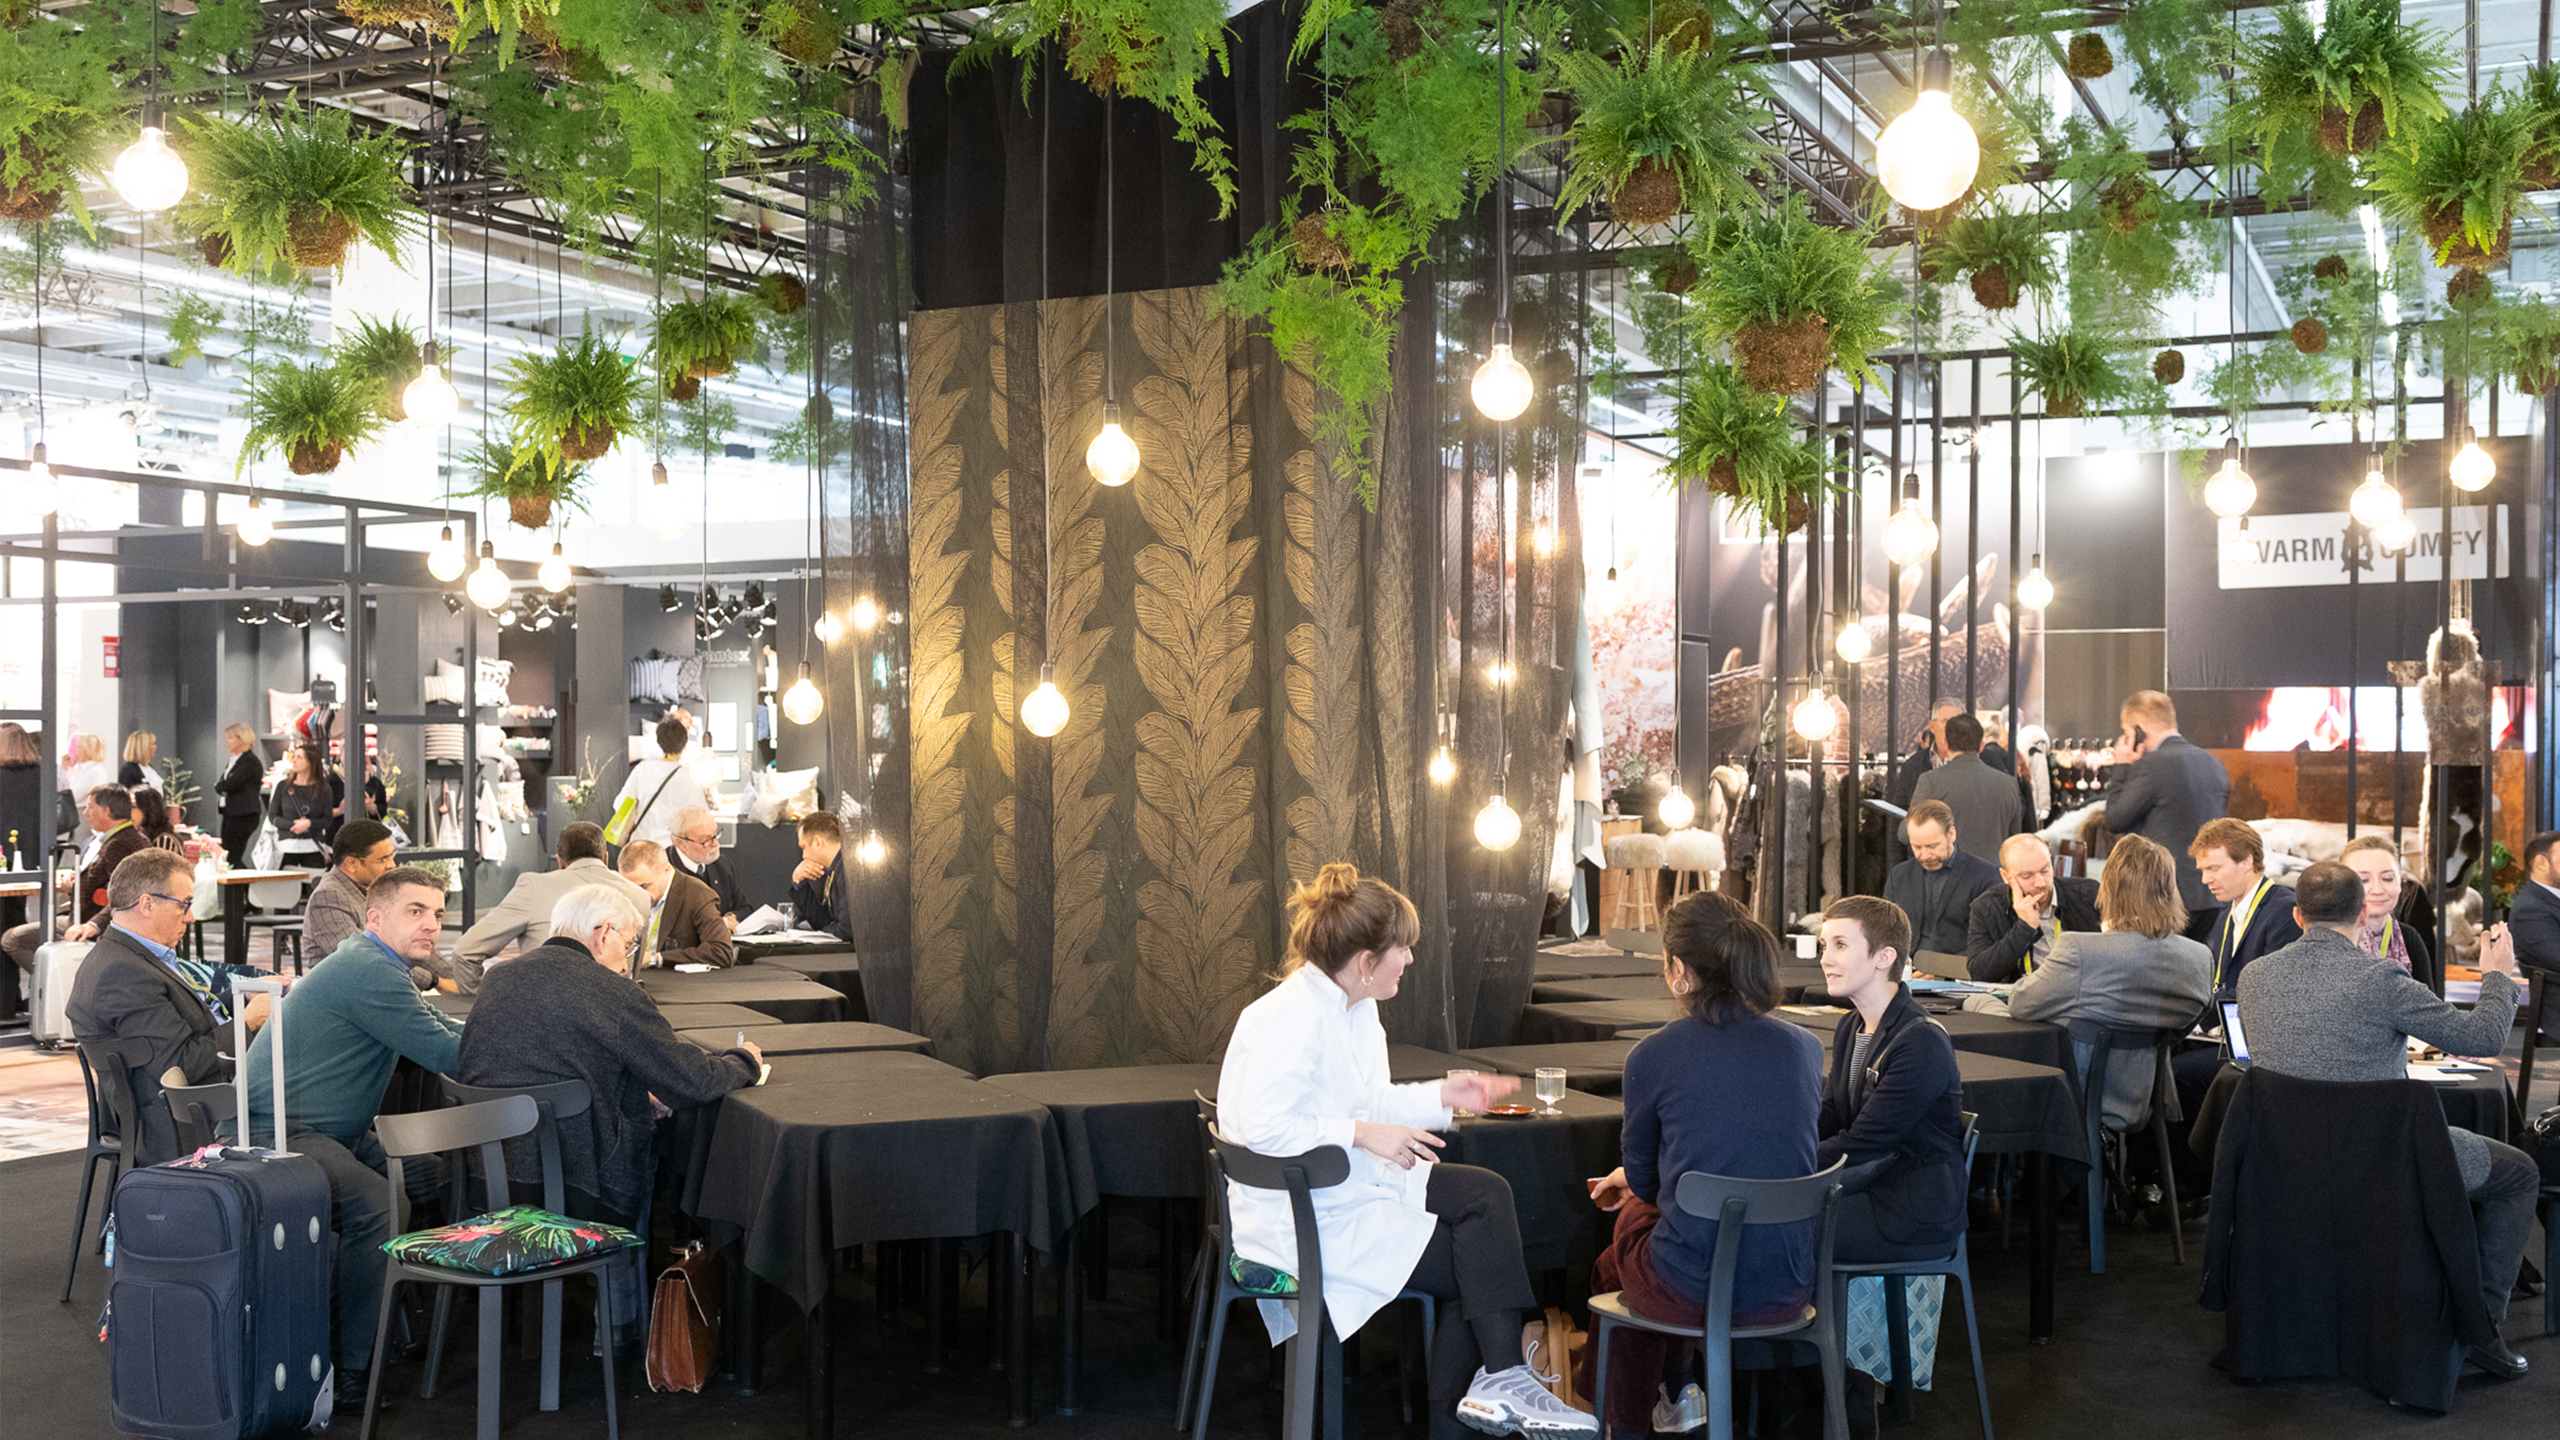 Heimtextil visitors 2019 are sitting together